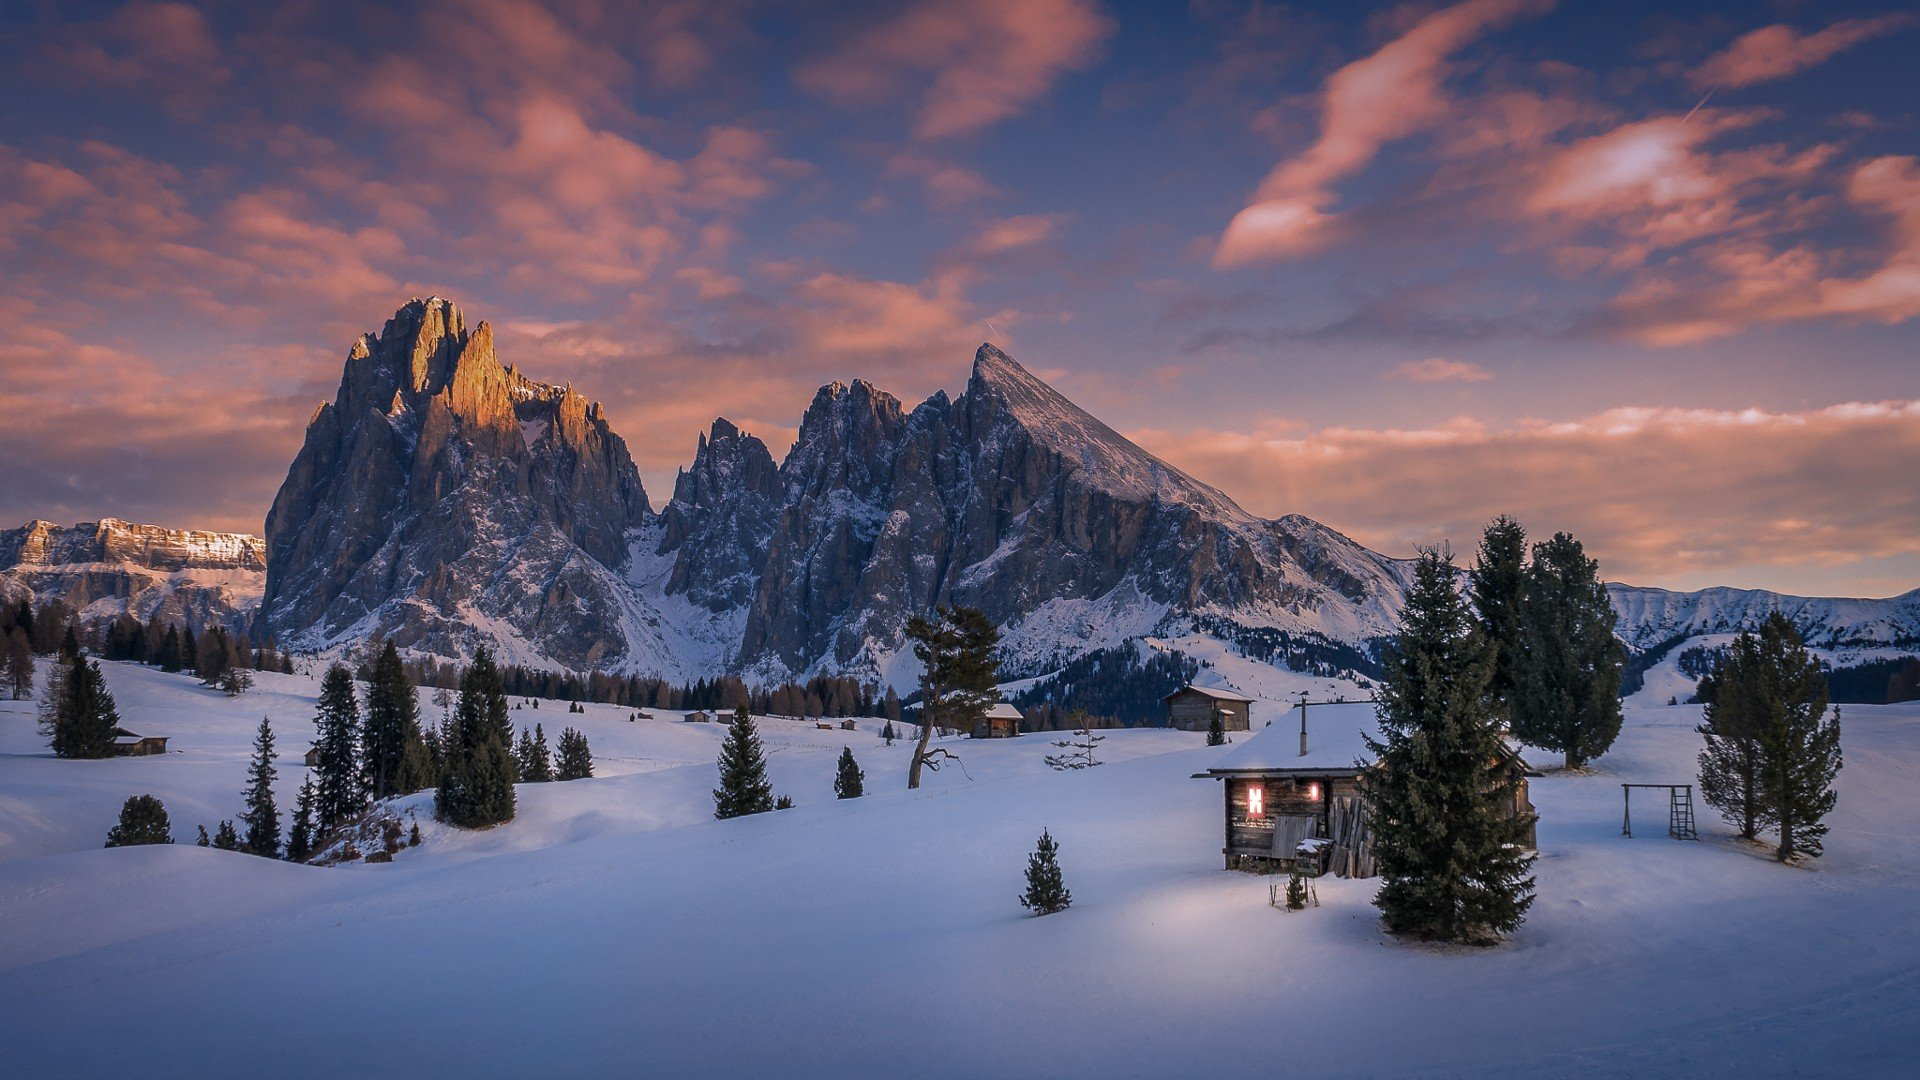 Funny 3d Wallpaper Snow Cabin Mountains Dolomites Mountains Italy Pine